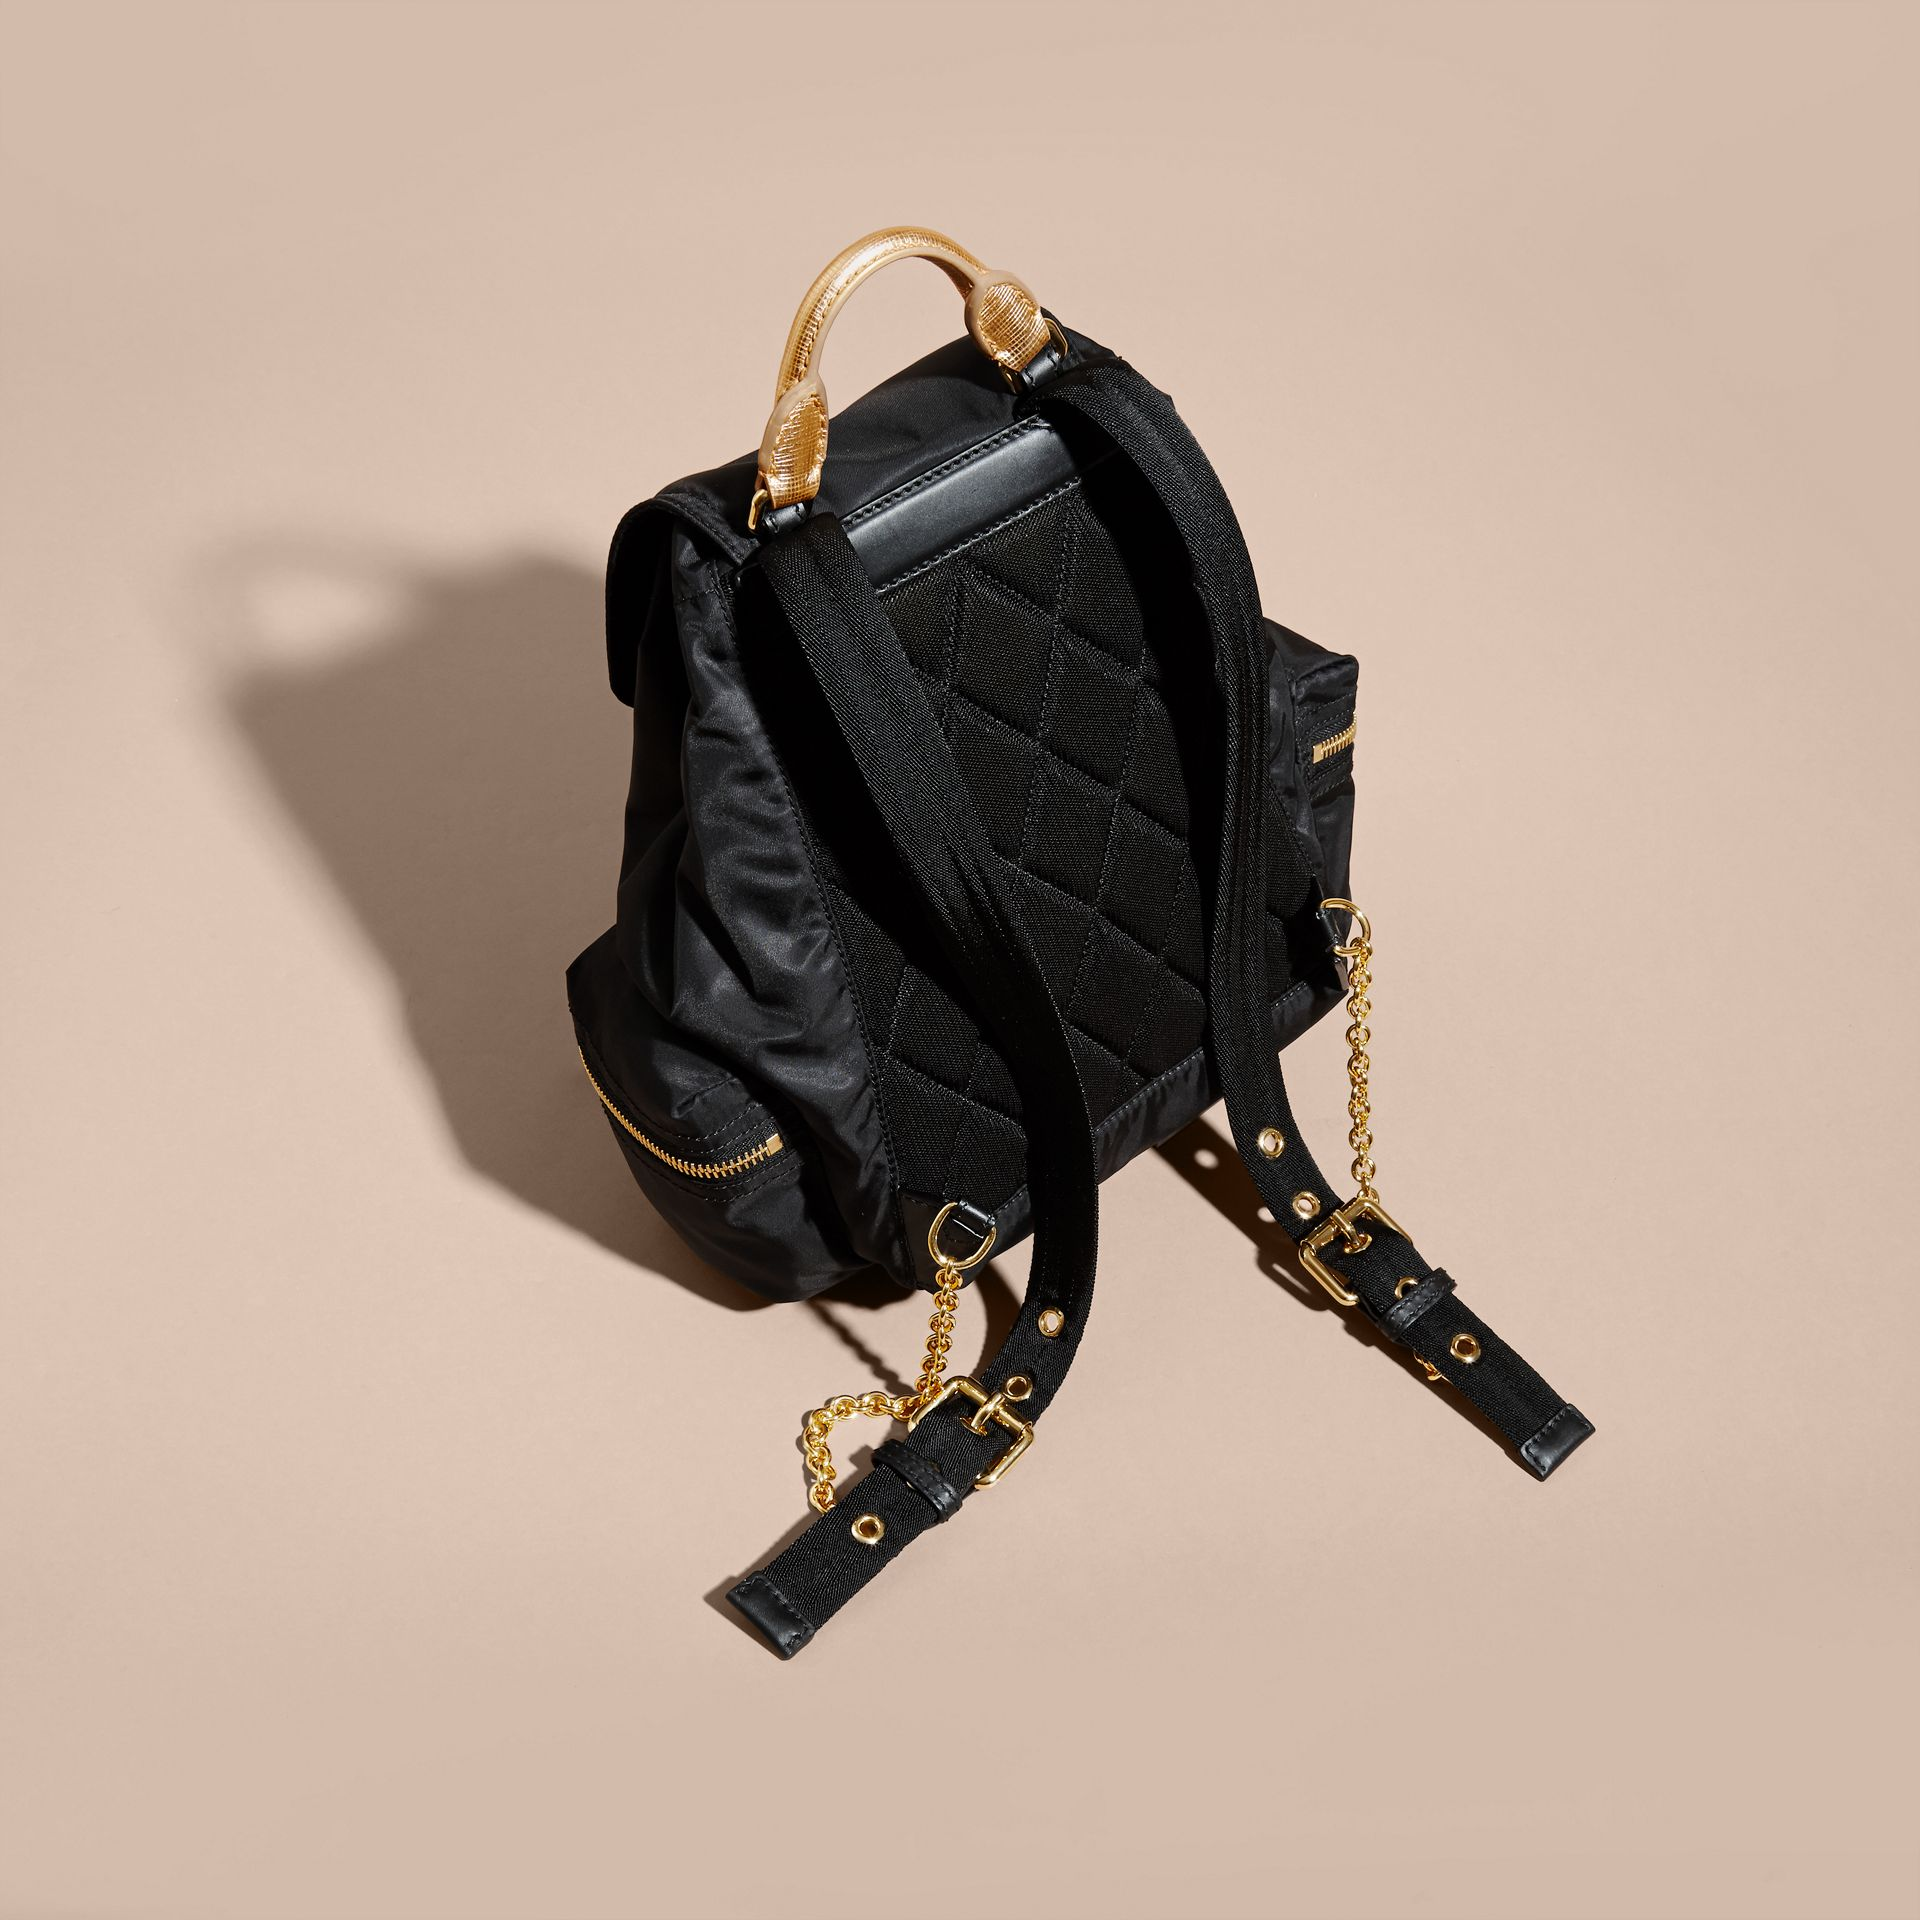 Black/gold The Medium Rucksack in Two-tone Nylon and Leather Black/gold - gallery image 3